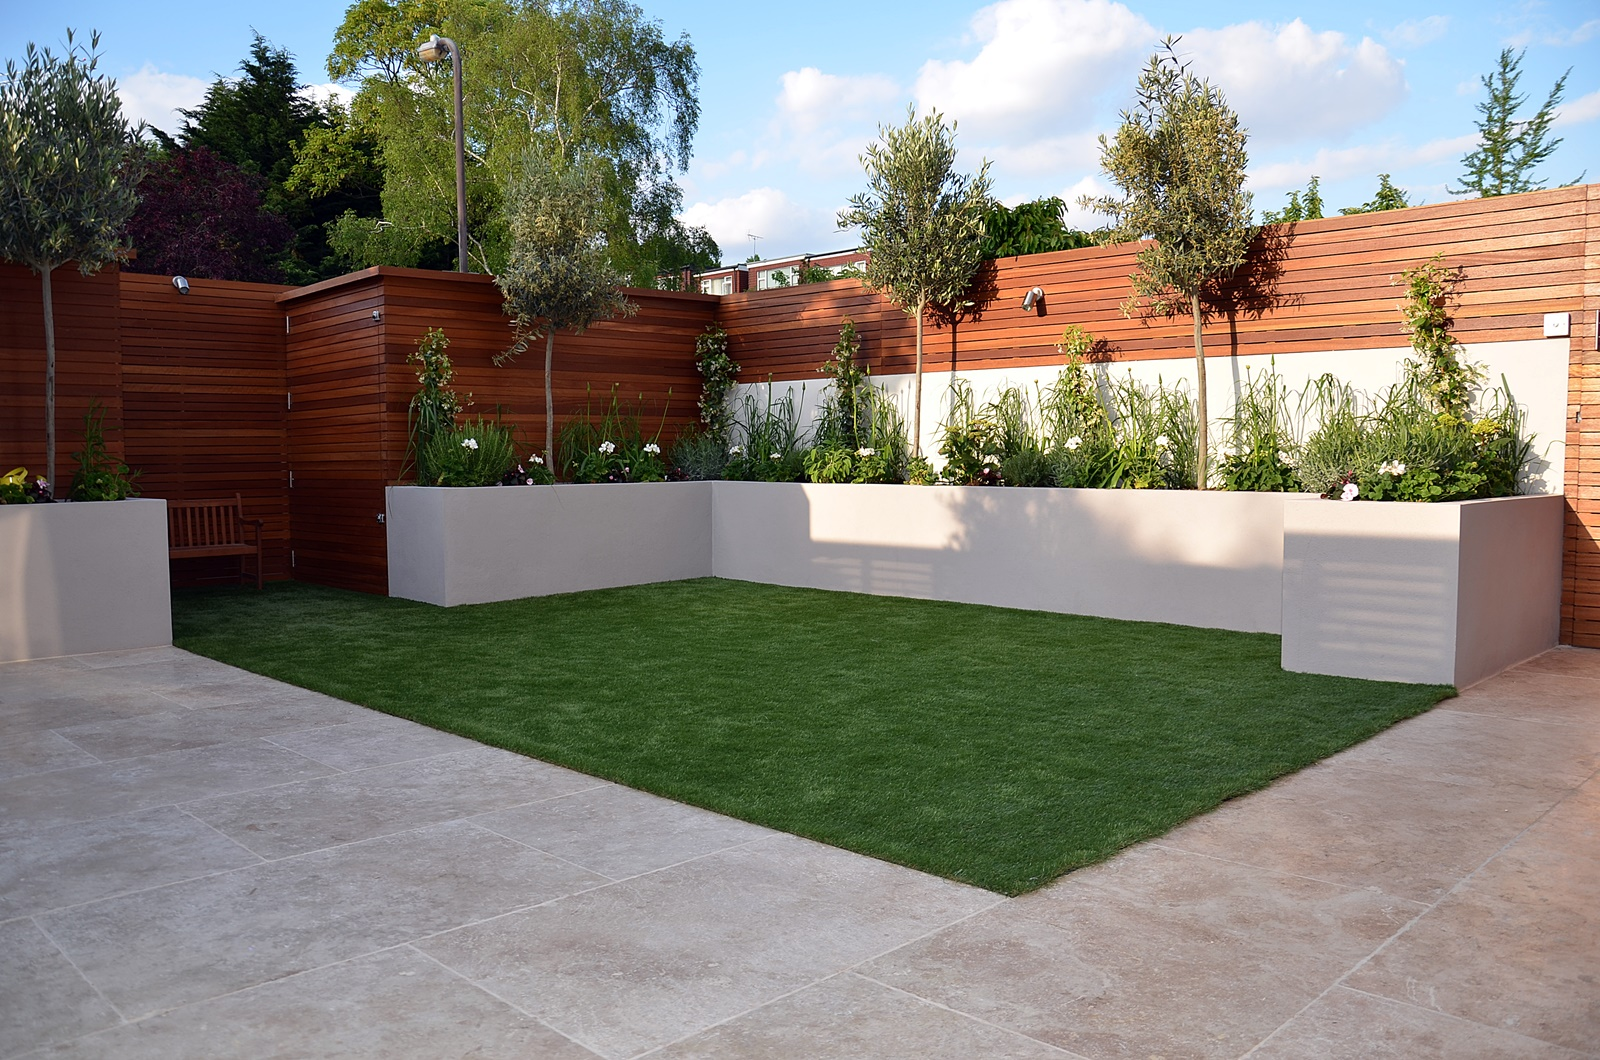 Small Garden Plans Uk Of Garden Design Ideas Aol Image Search Results